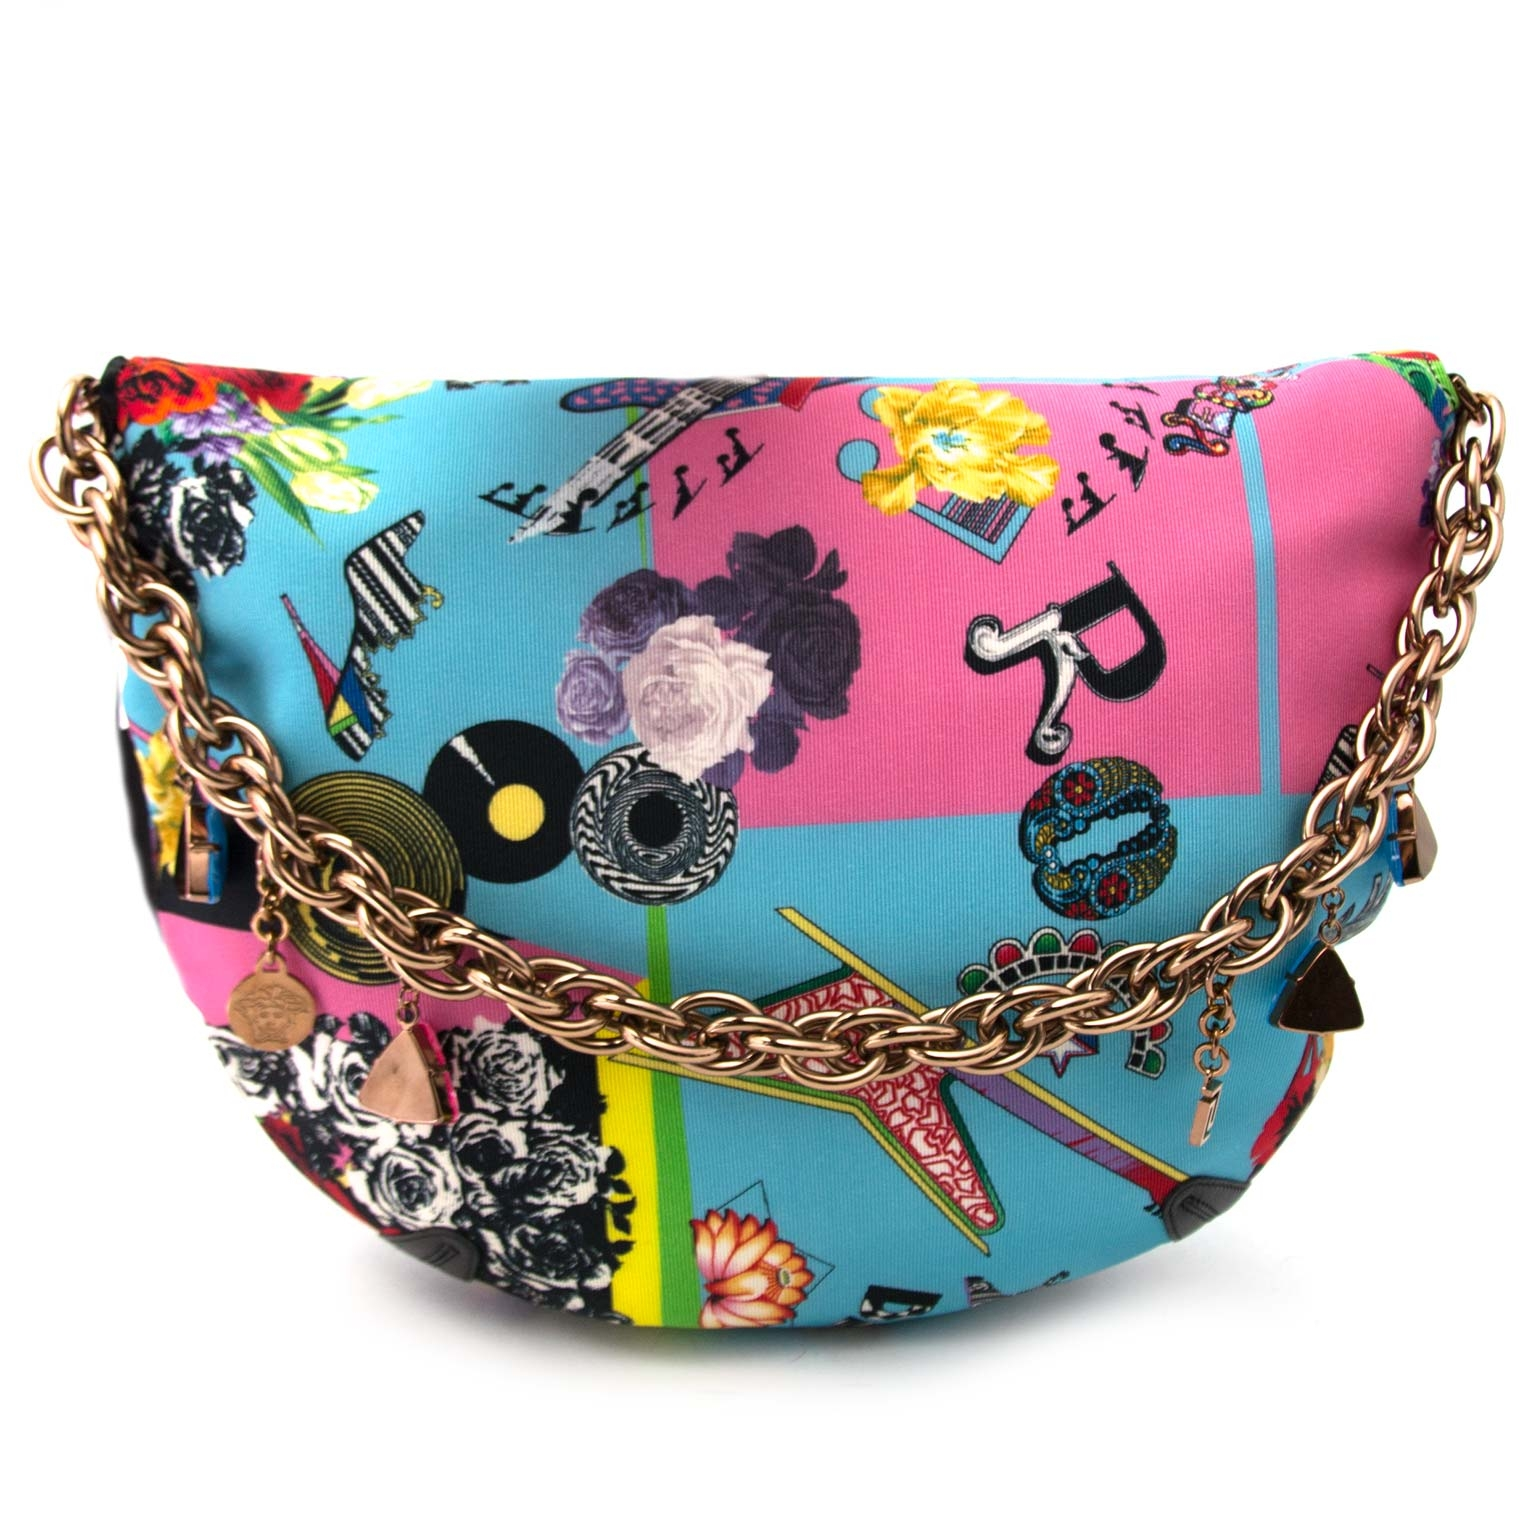 Versace Multicolor Marlene Printed Shoulder Bag for sale online